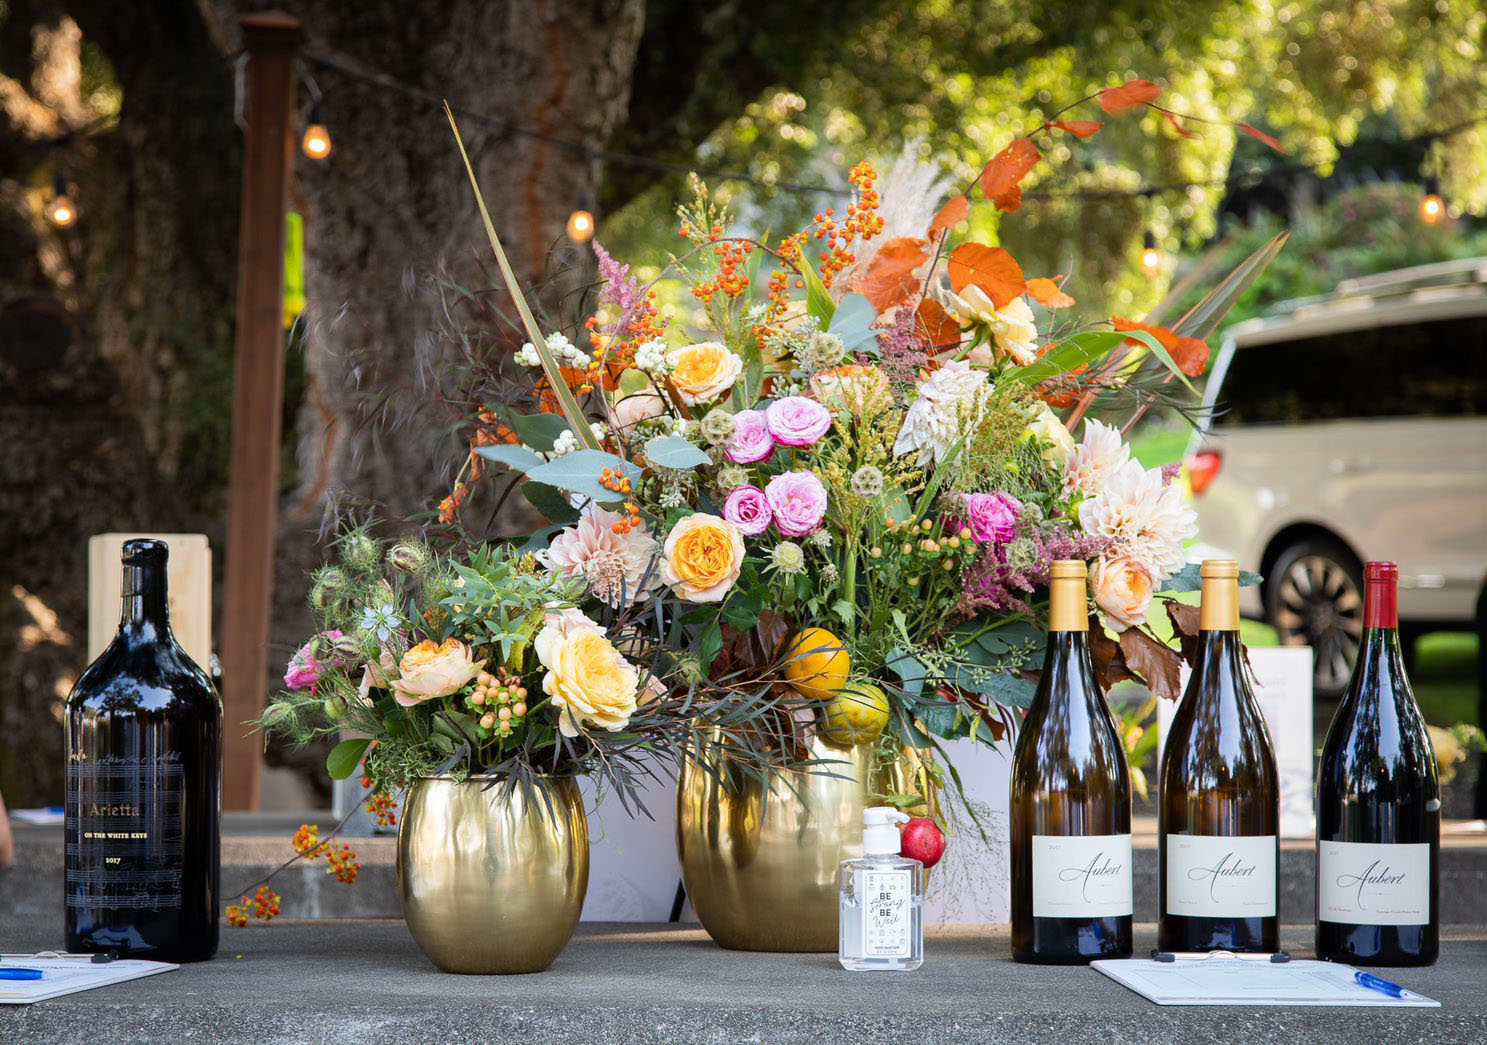 Two floral arrangements and four bottles of wine